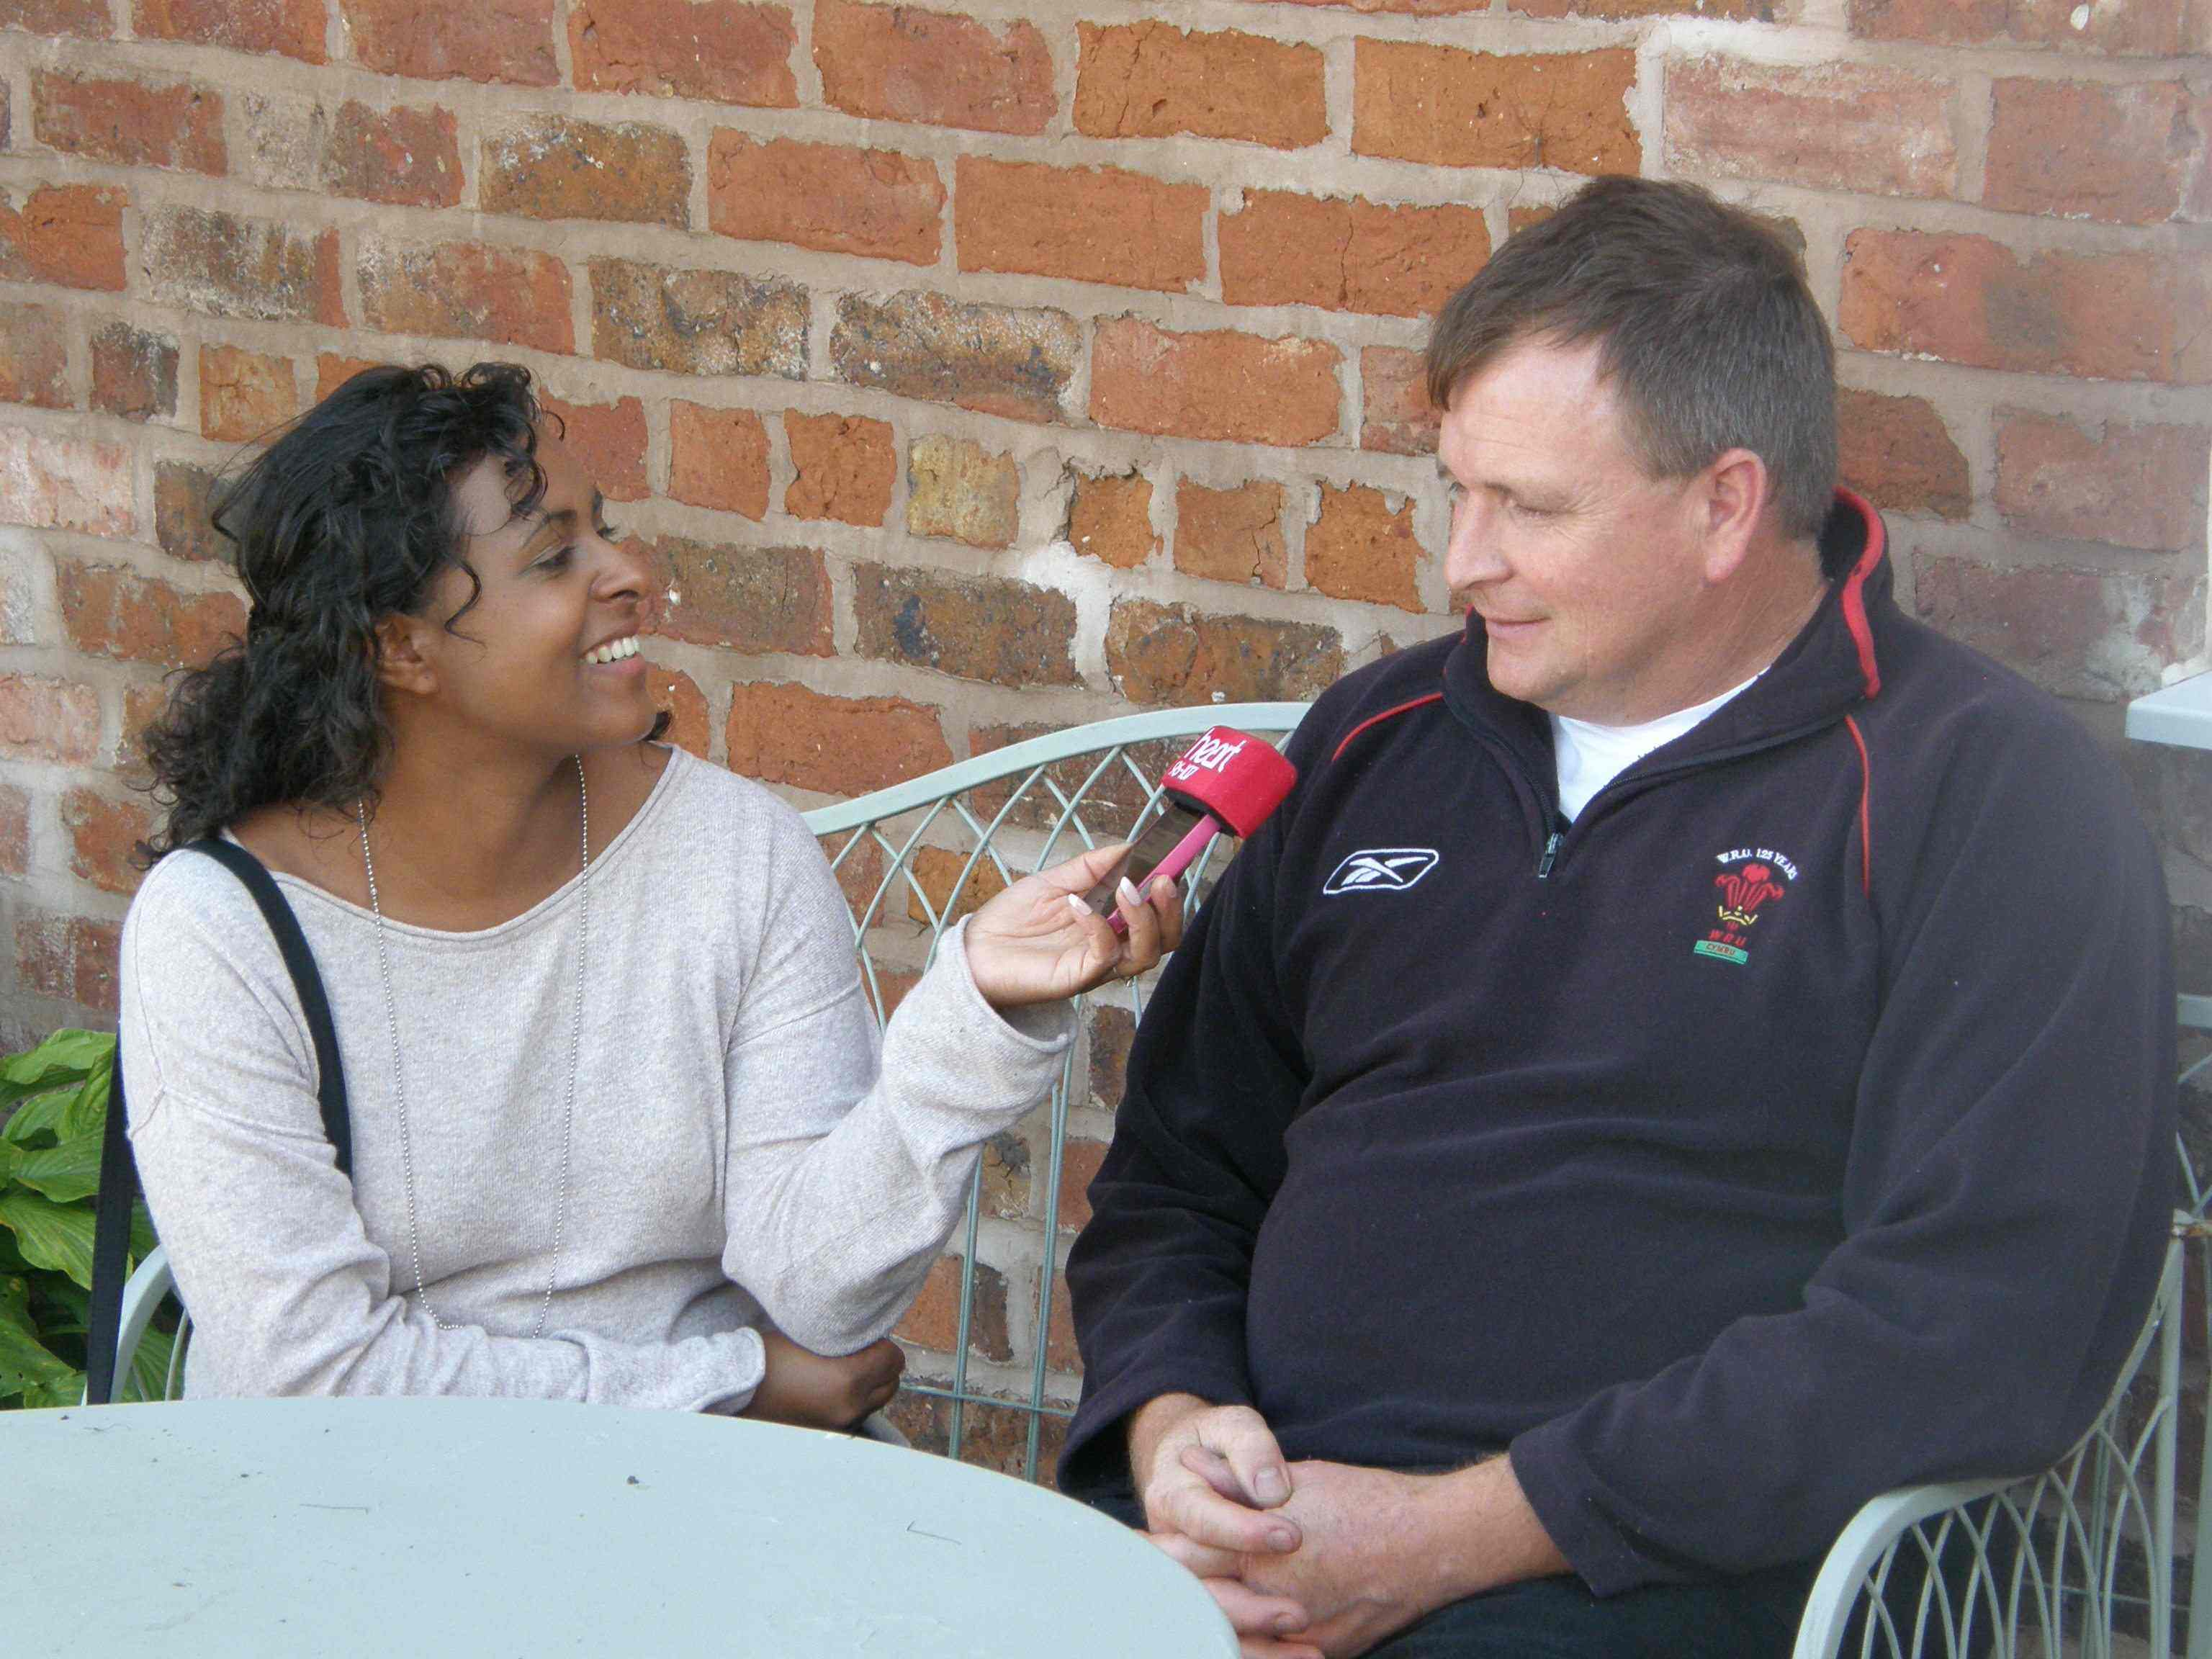 Richard Tomlinson being interviewed by Charlene Smith